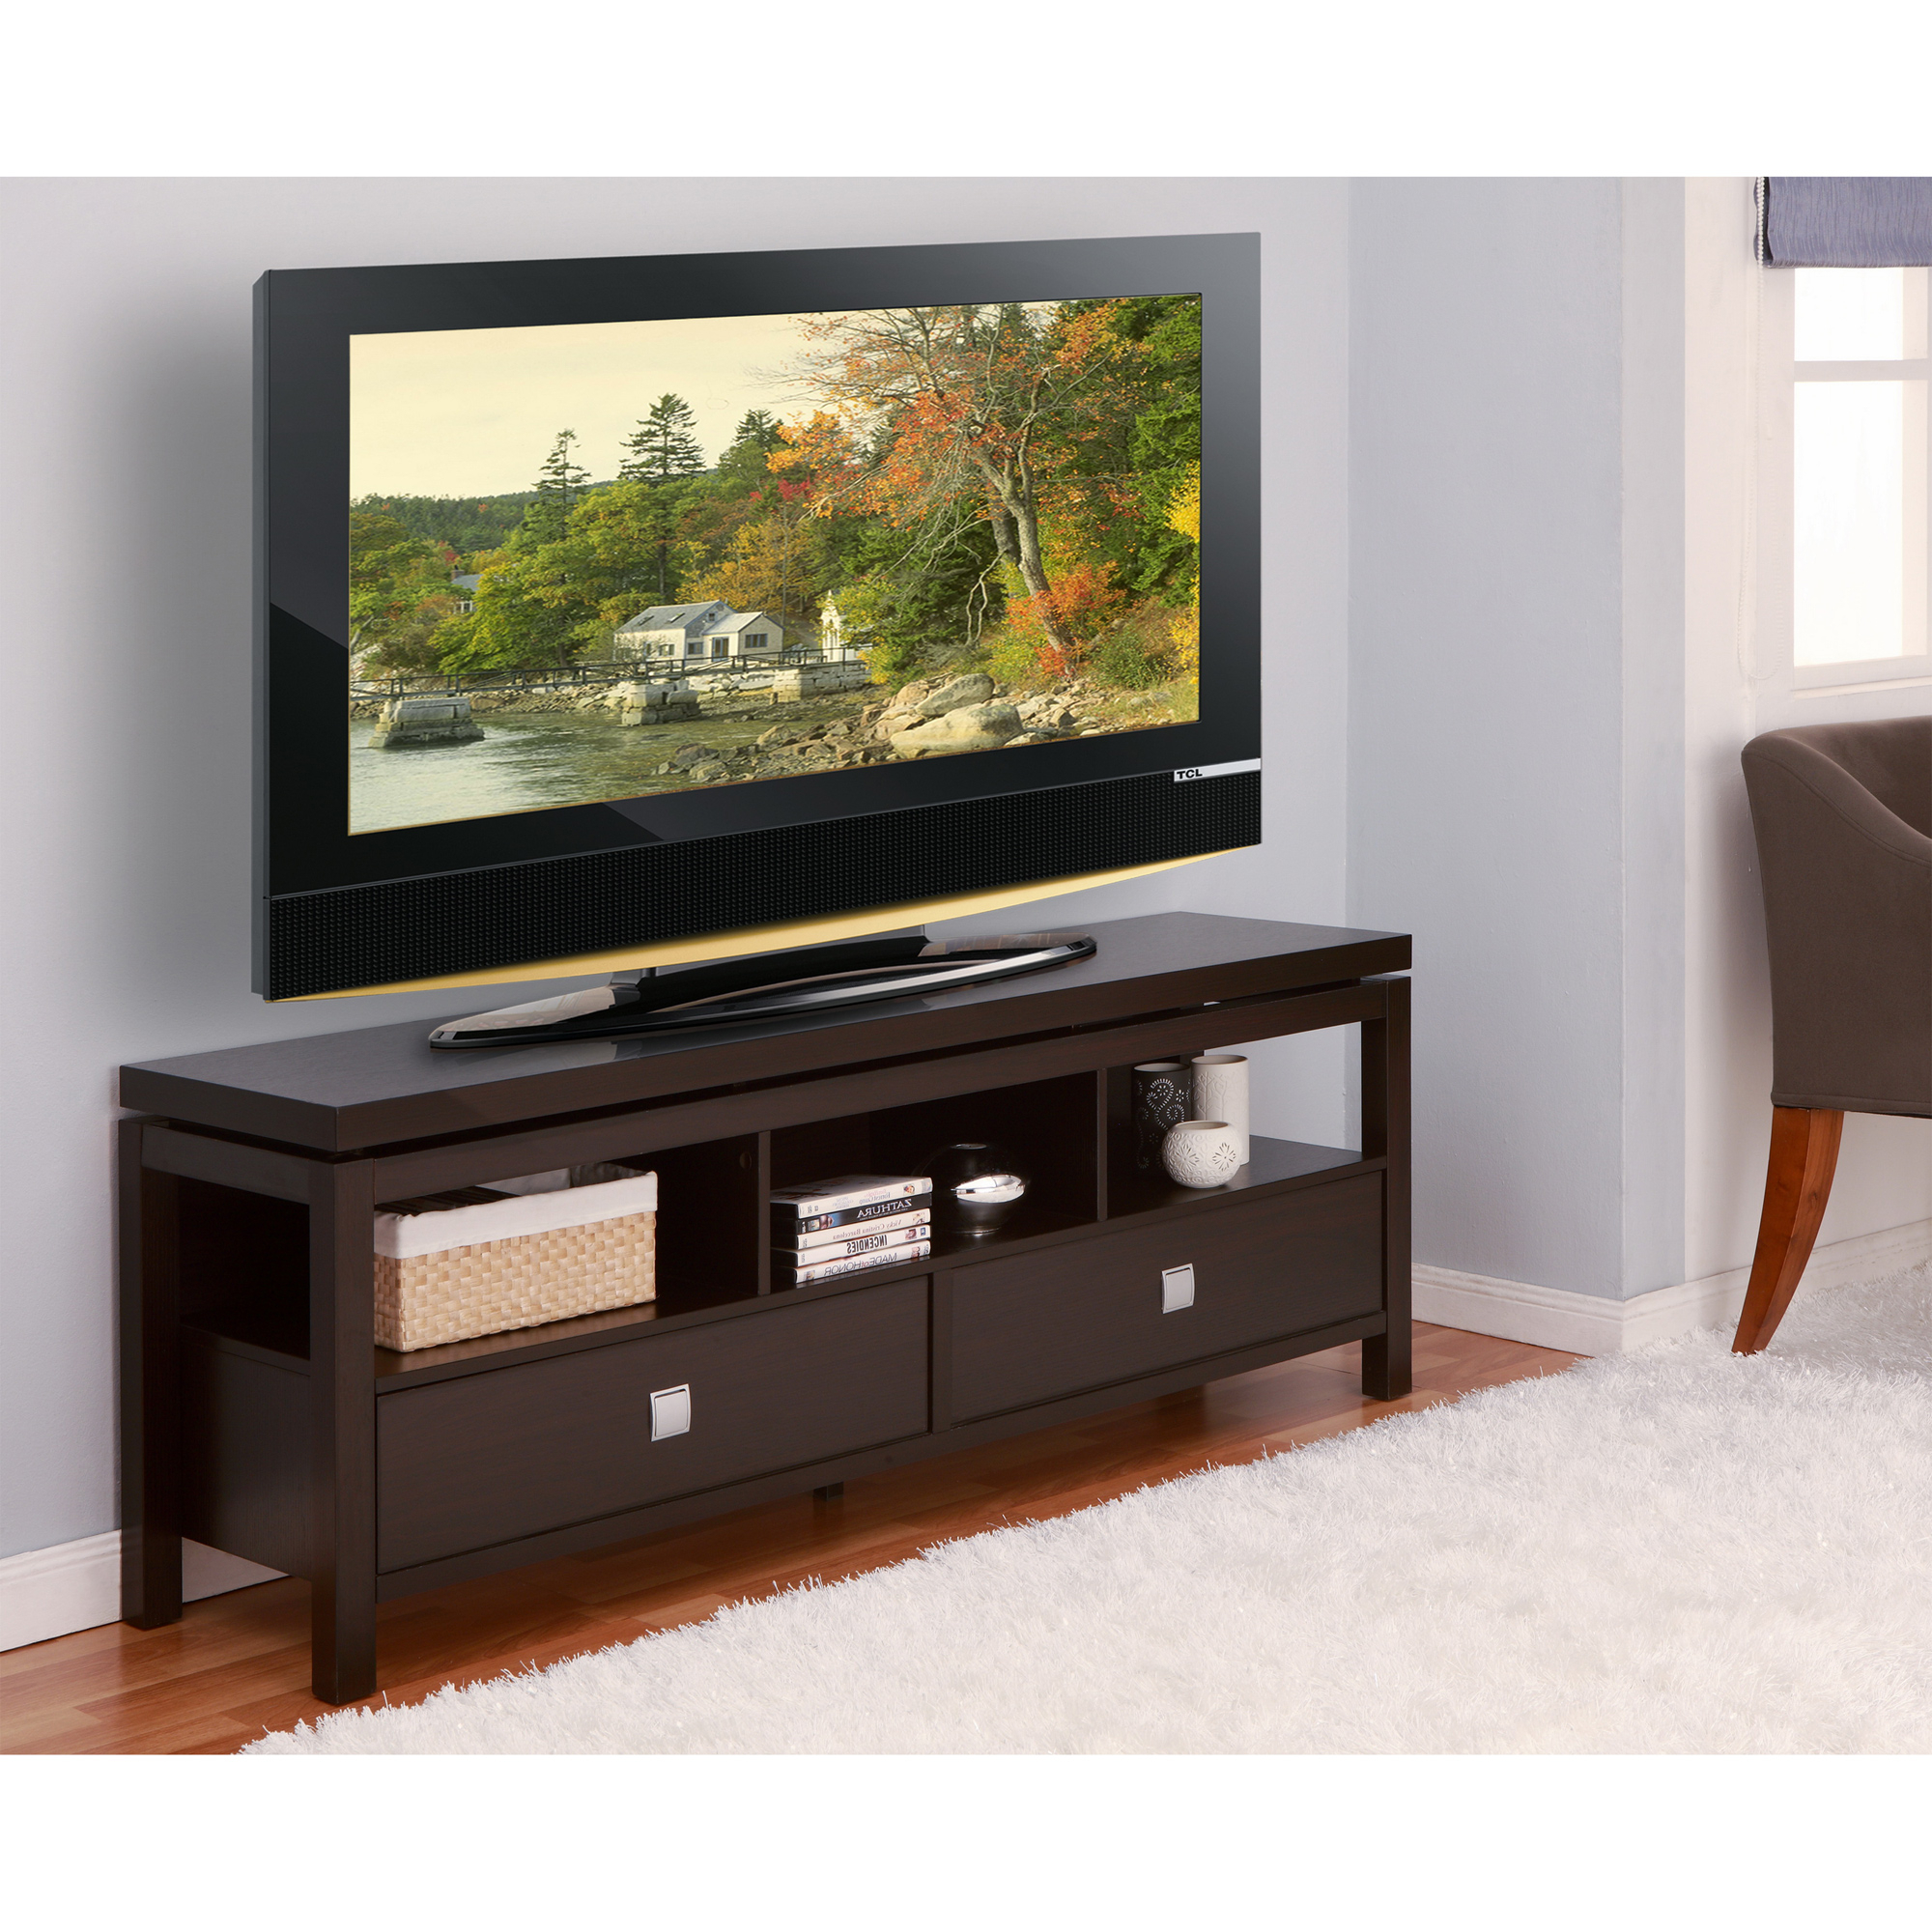 44 Inch Tv Stand 65 With Mount Walmart Stands Best Buy 55 Costco 60 For Oxford 60 Inch Tv Stands (View 1 of 20)